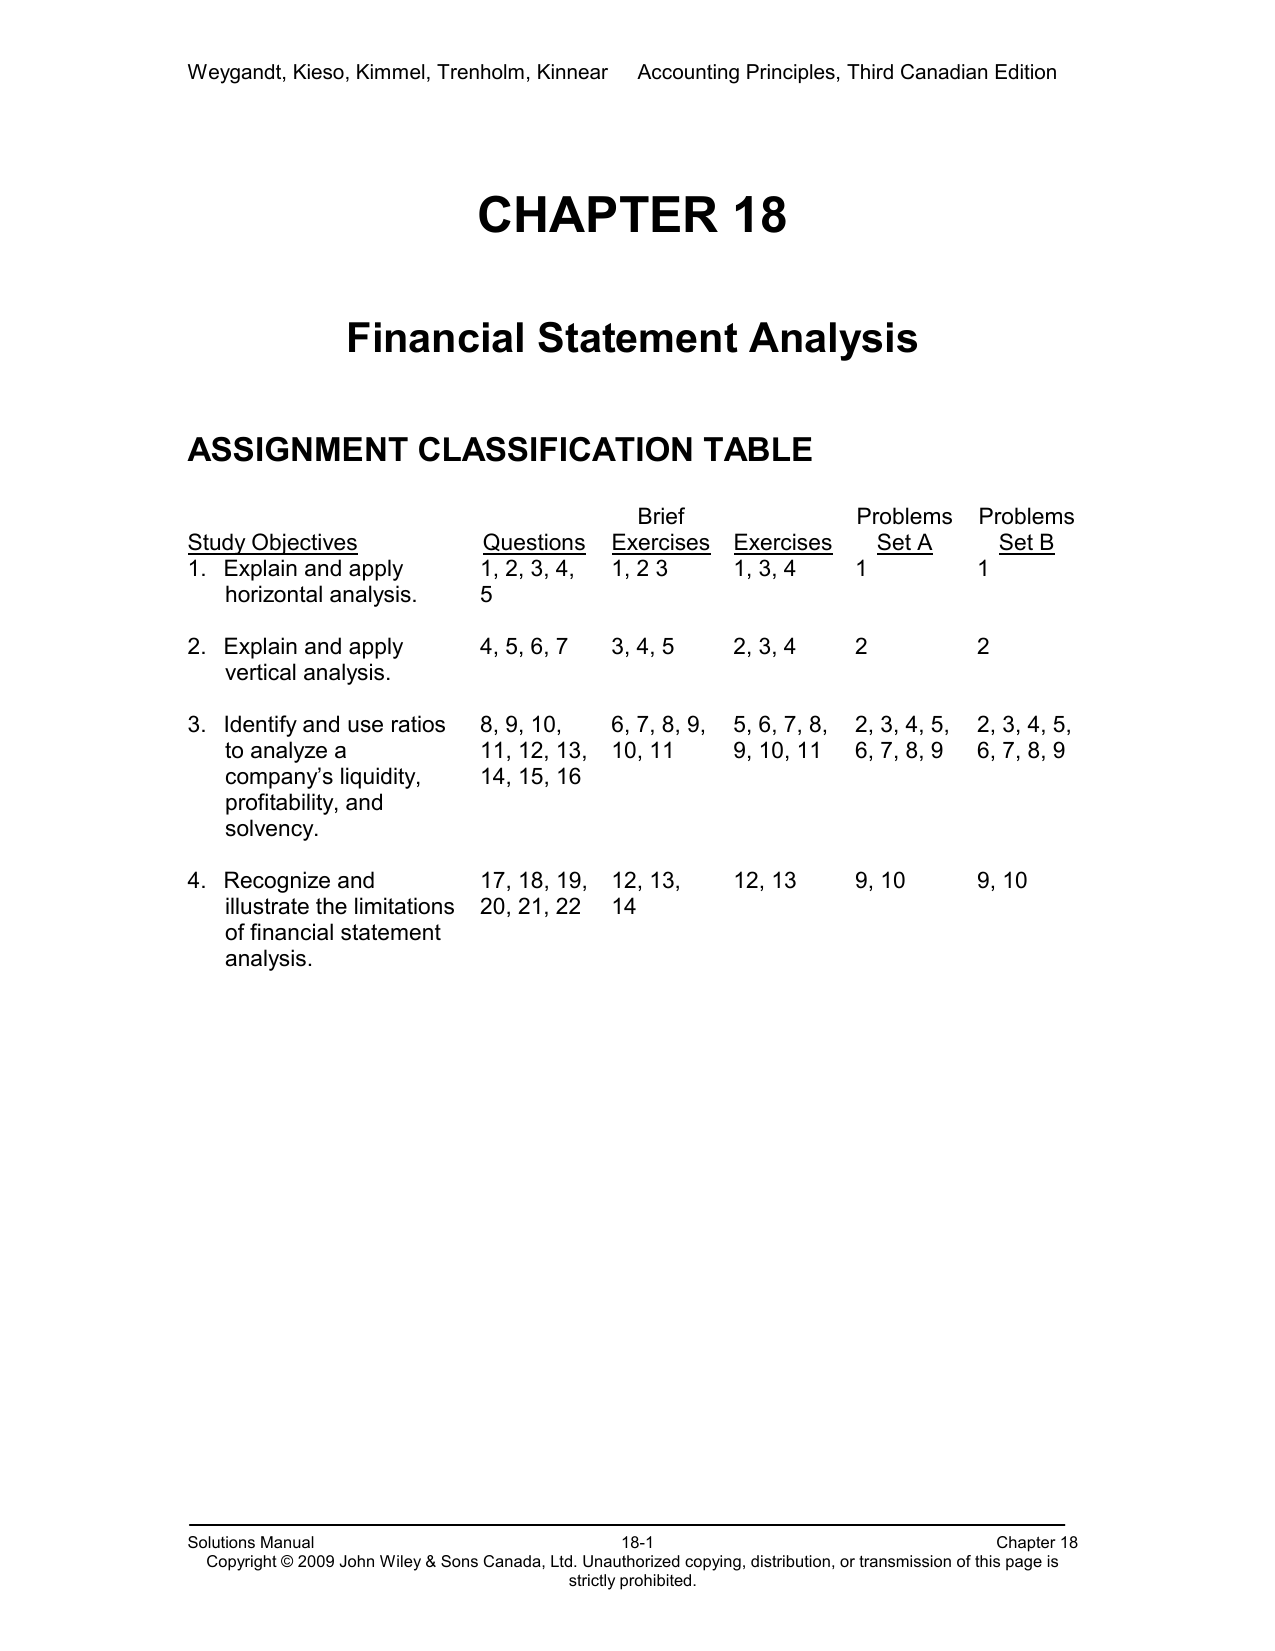 managerial accounting solutions manual wiley free owners manual u2022 rh wordworksbysea com Managerial Accounting Book Managerial Accounting Example Problems